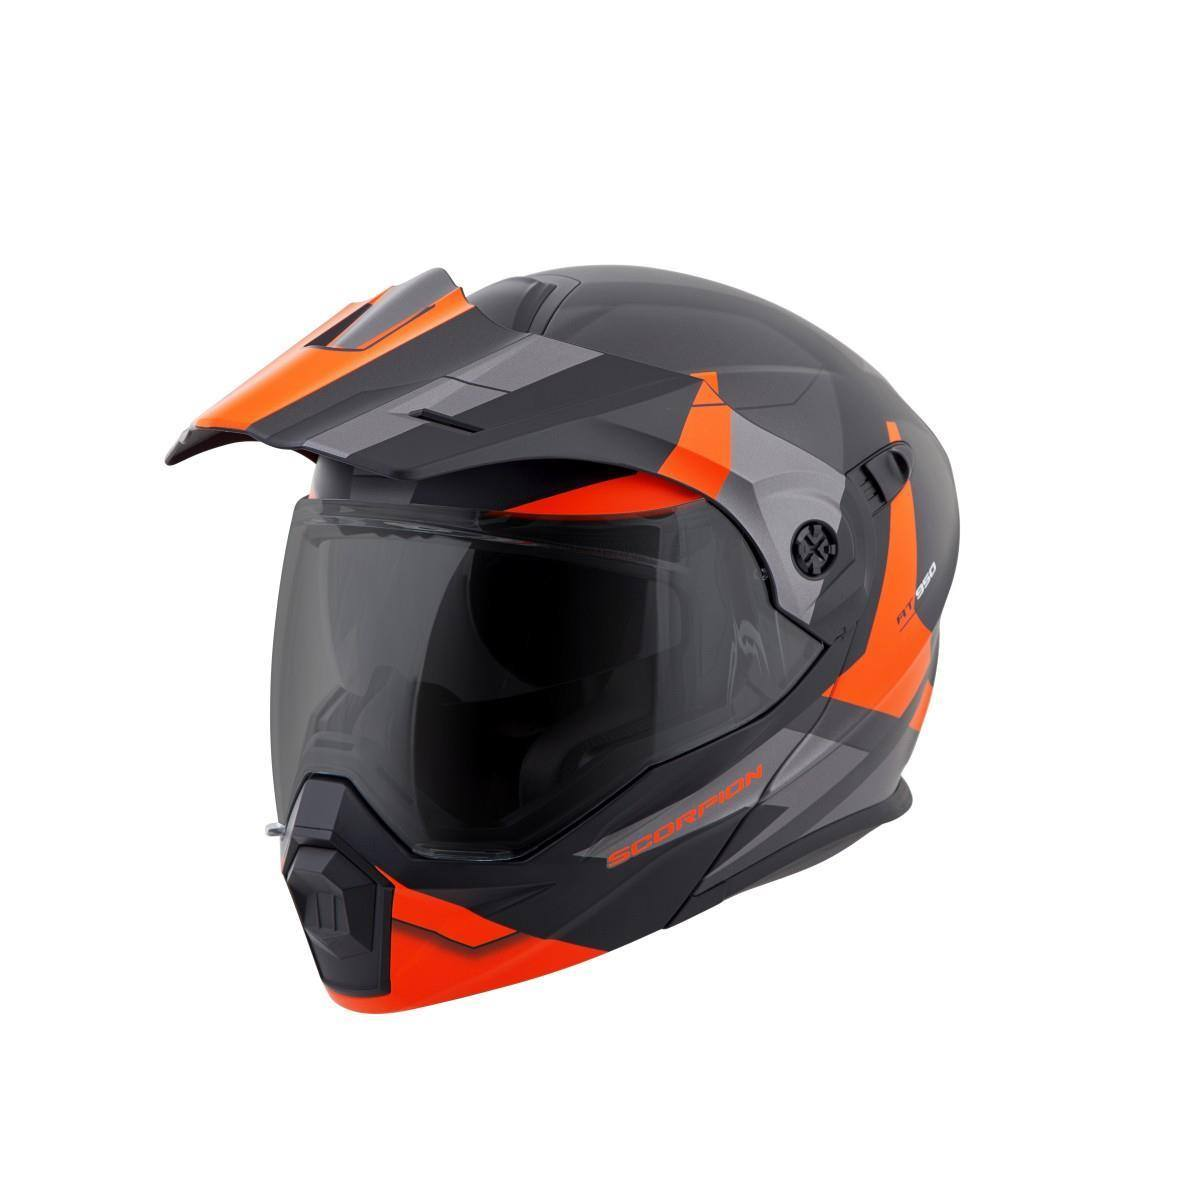 732ef0f2 EXO-AT950 Neocon Helmet for sale in Farmington Hills, MI | Allied Leisure  Corp. (248) 477-0212